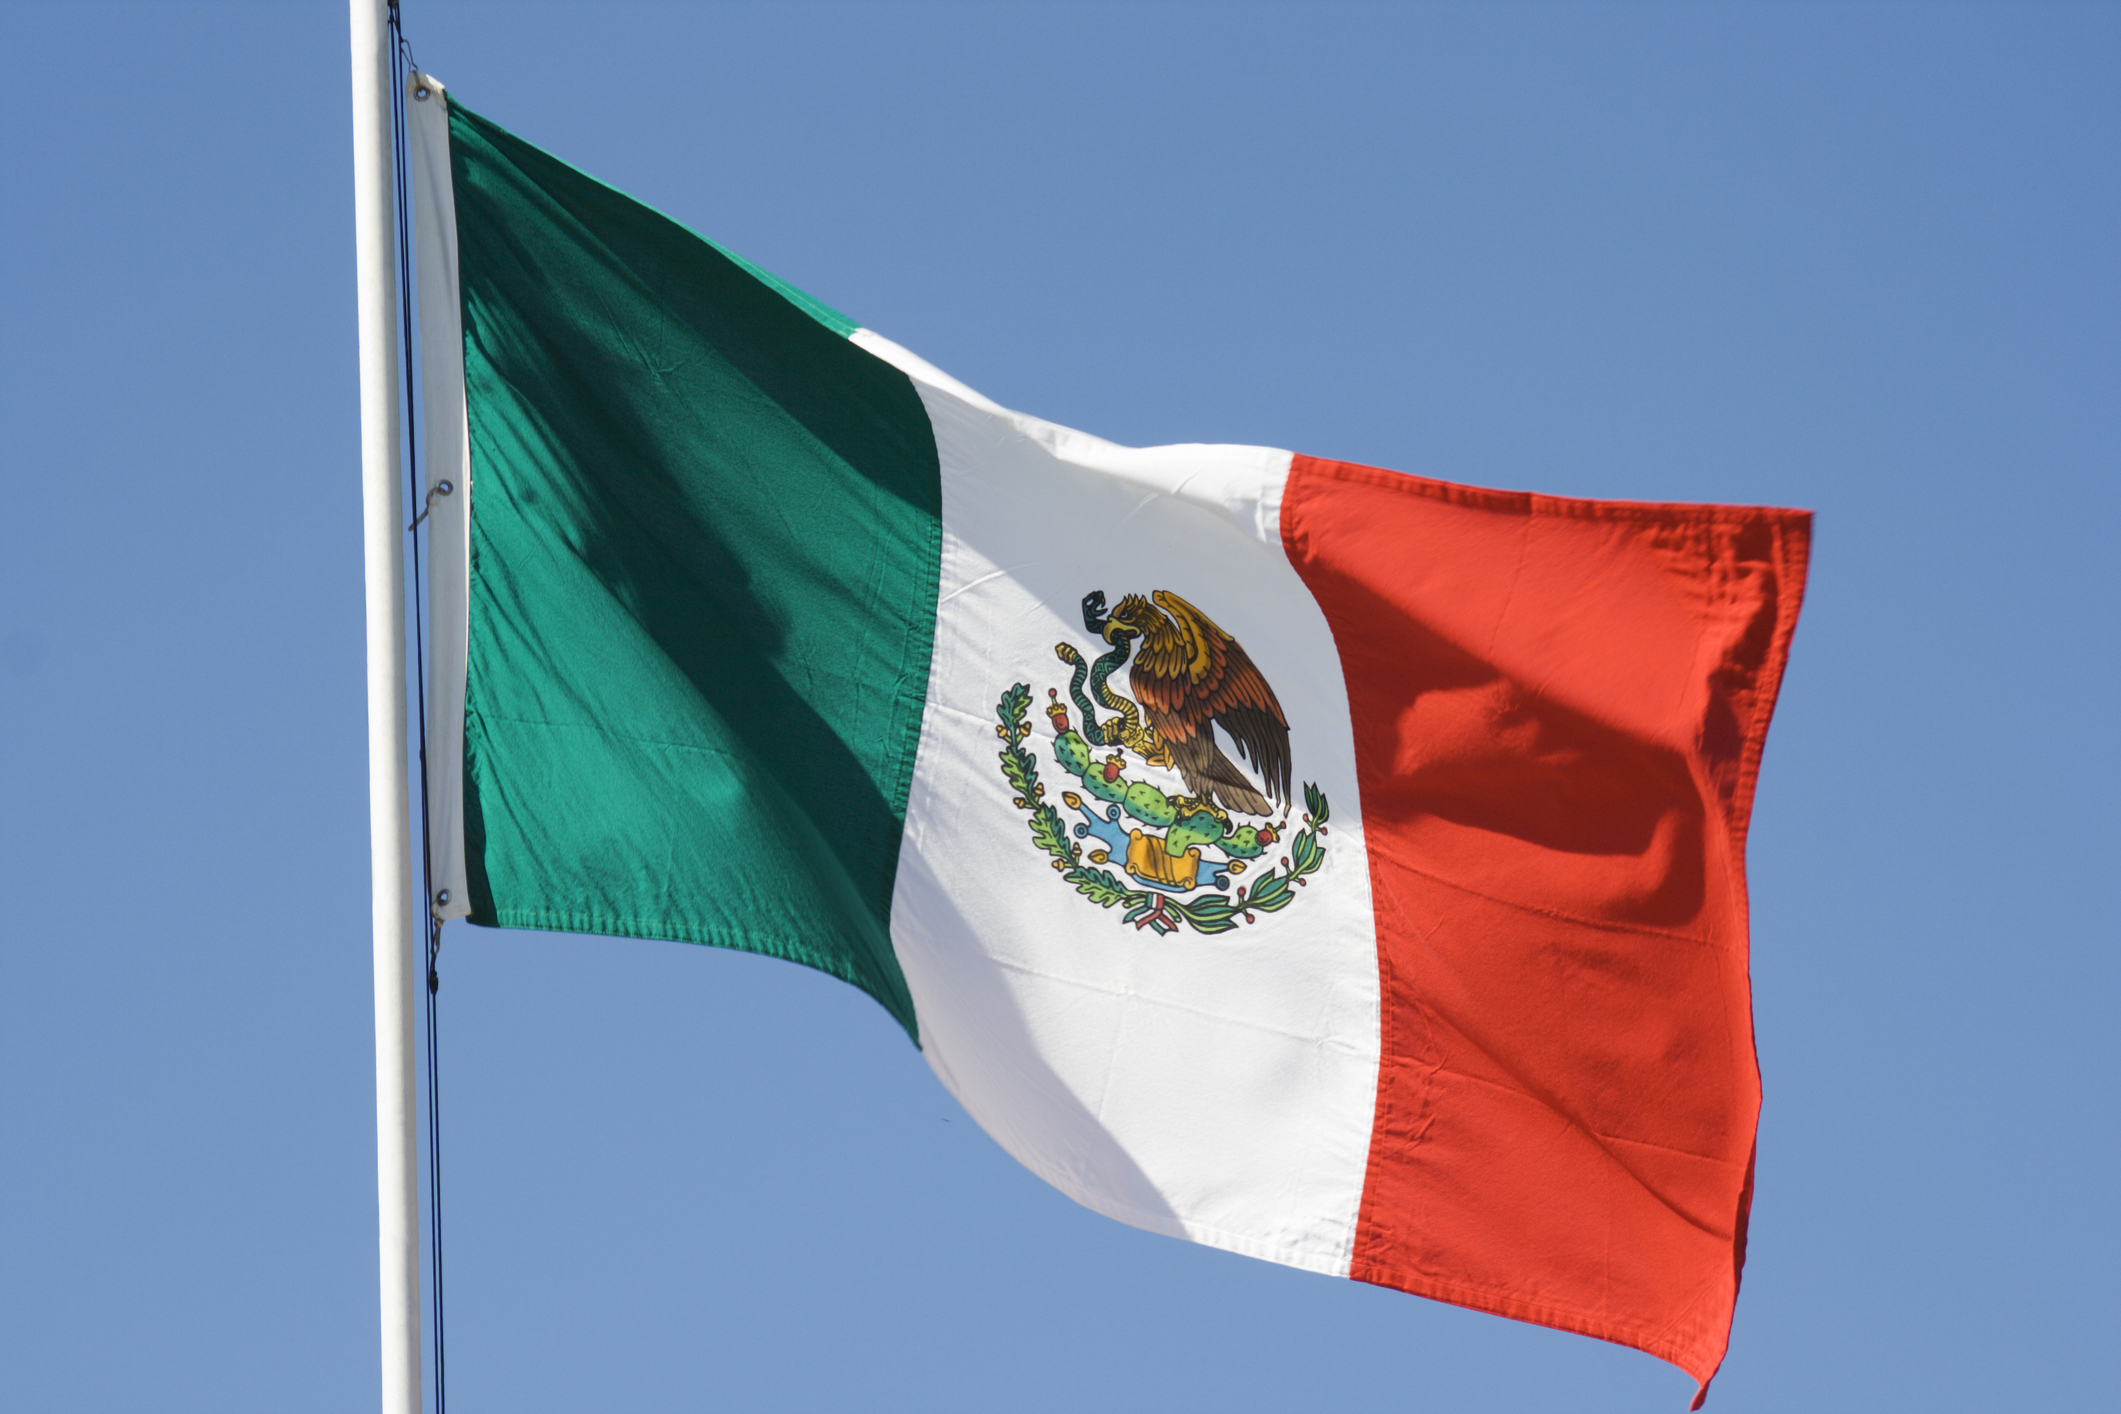 11-Year-Old Kills Teacher, Injures Classmates & Takes His Own Life at Mexican School